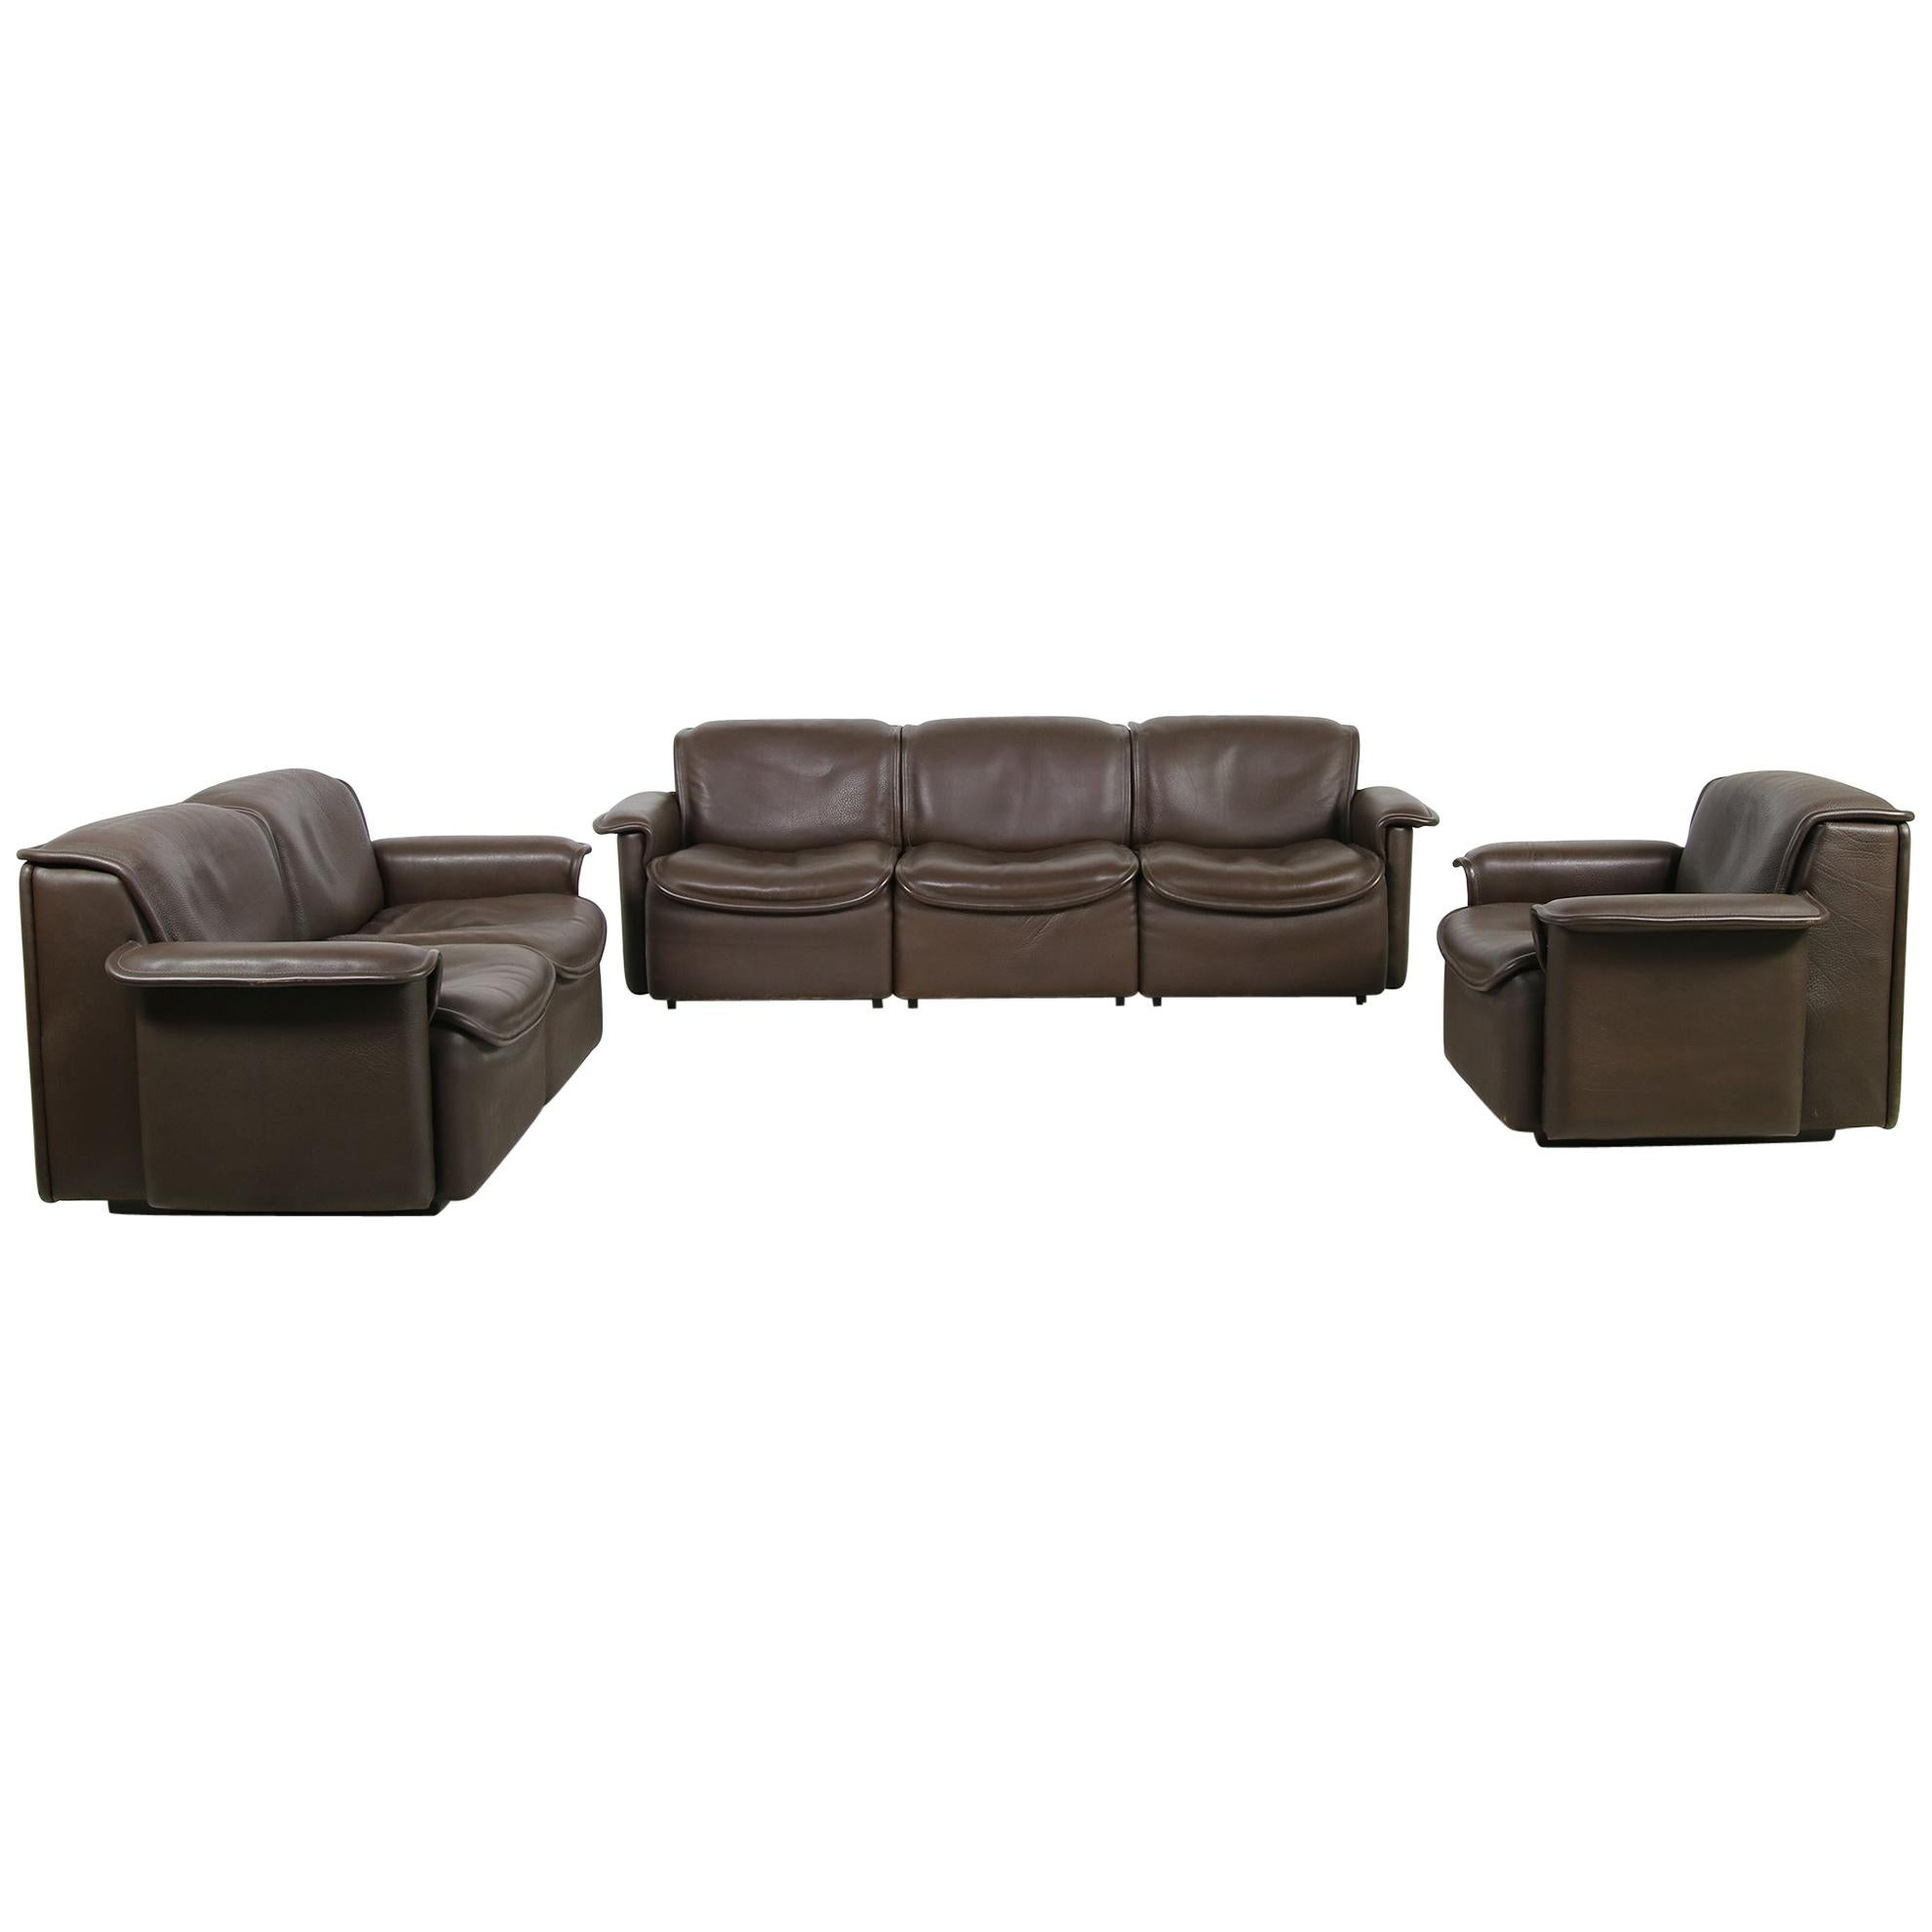 Vintage 1970s Modular De Sede DS 12 Brown Leather Sofa Set & Chair Seating Group